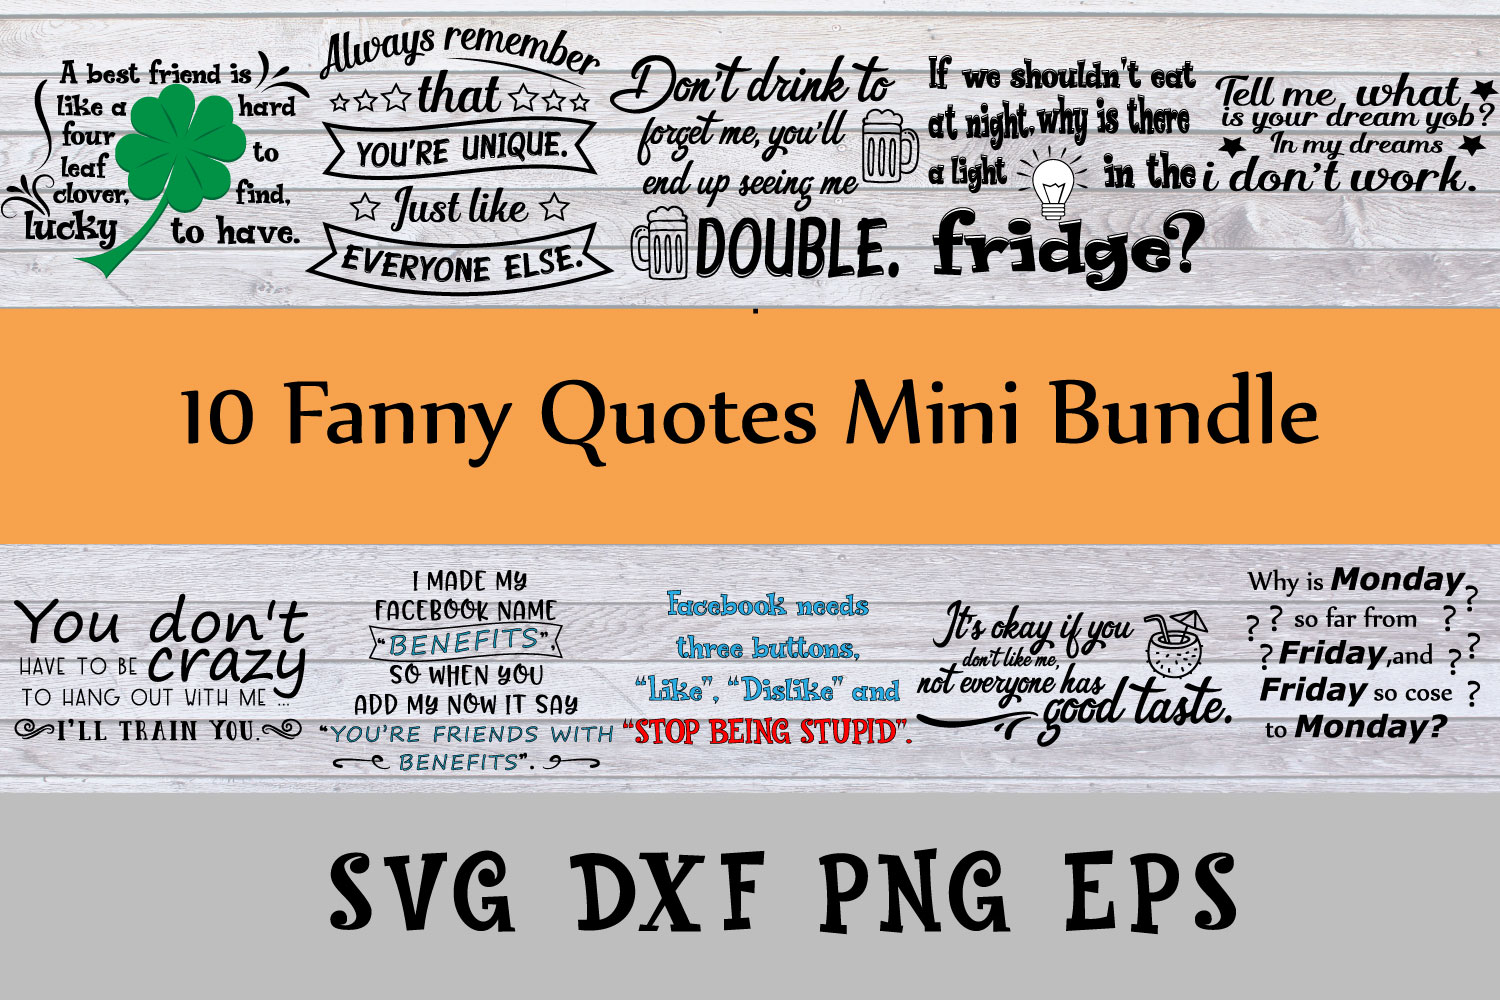 Fanny quotes mini bundle Svg Dxf Png Jpg Eps vector file Cut example image 1